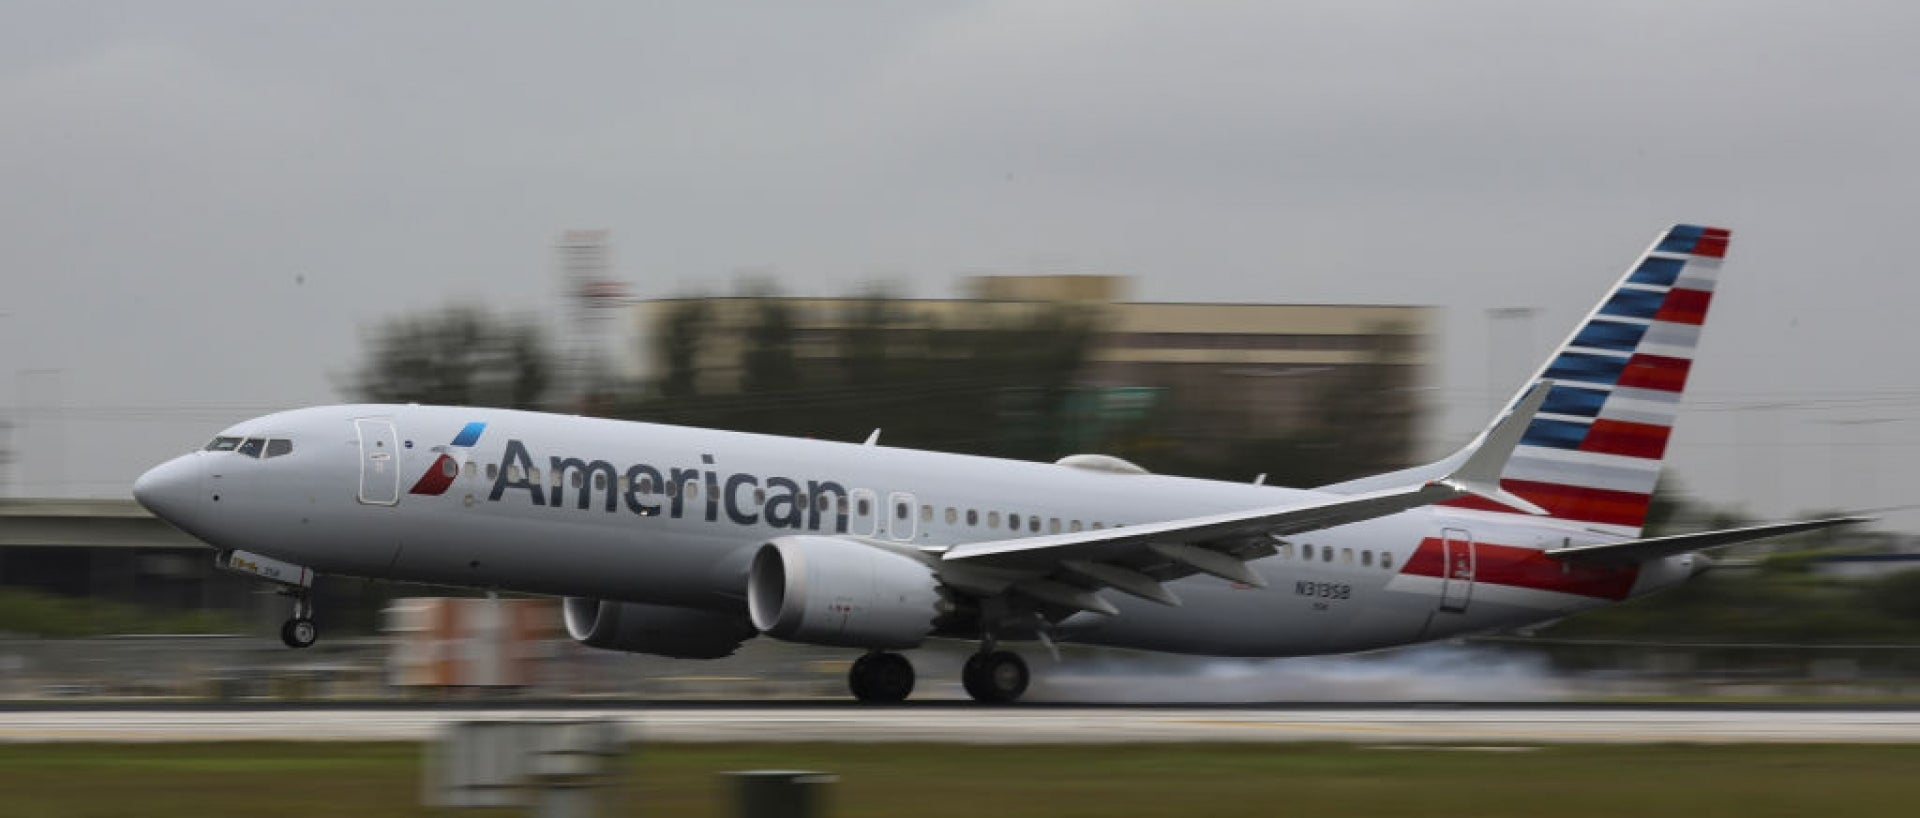 American Airline plan on the tarmac